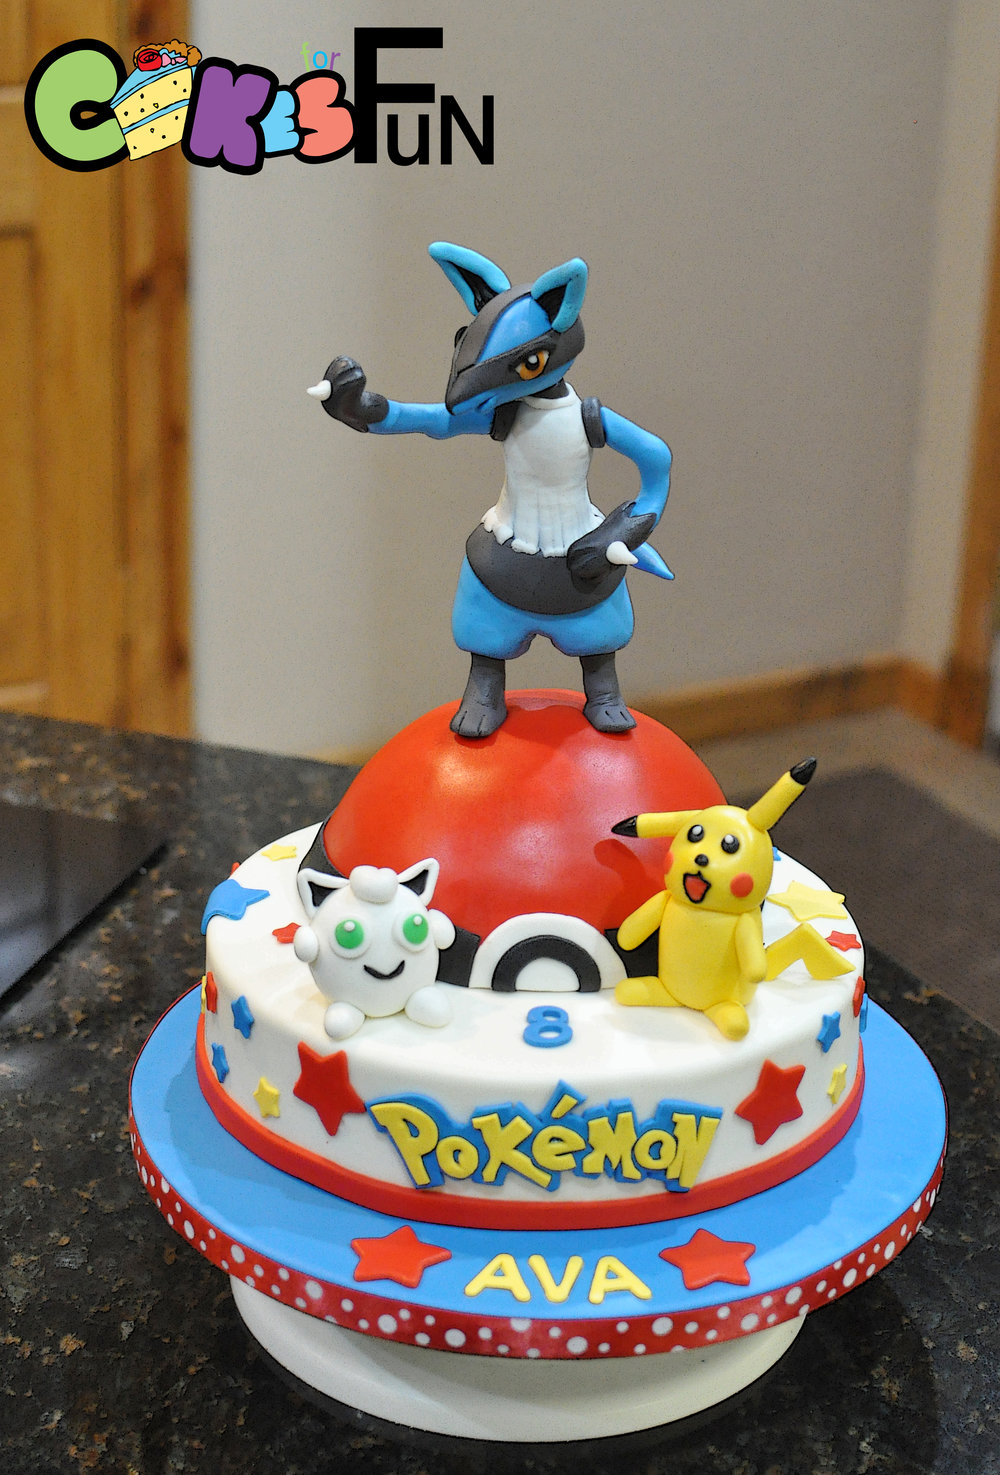 Pokemon Cake.jpg